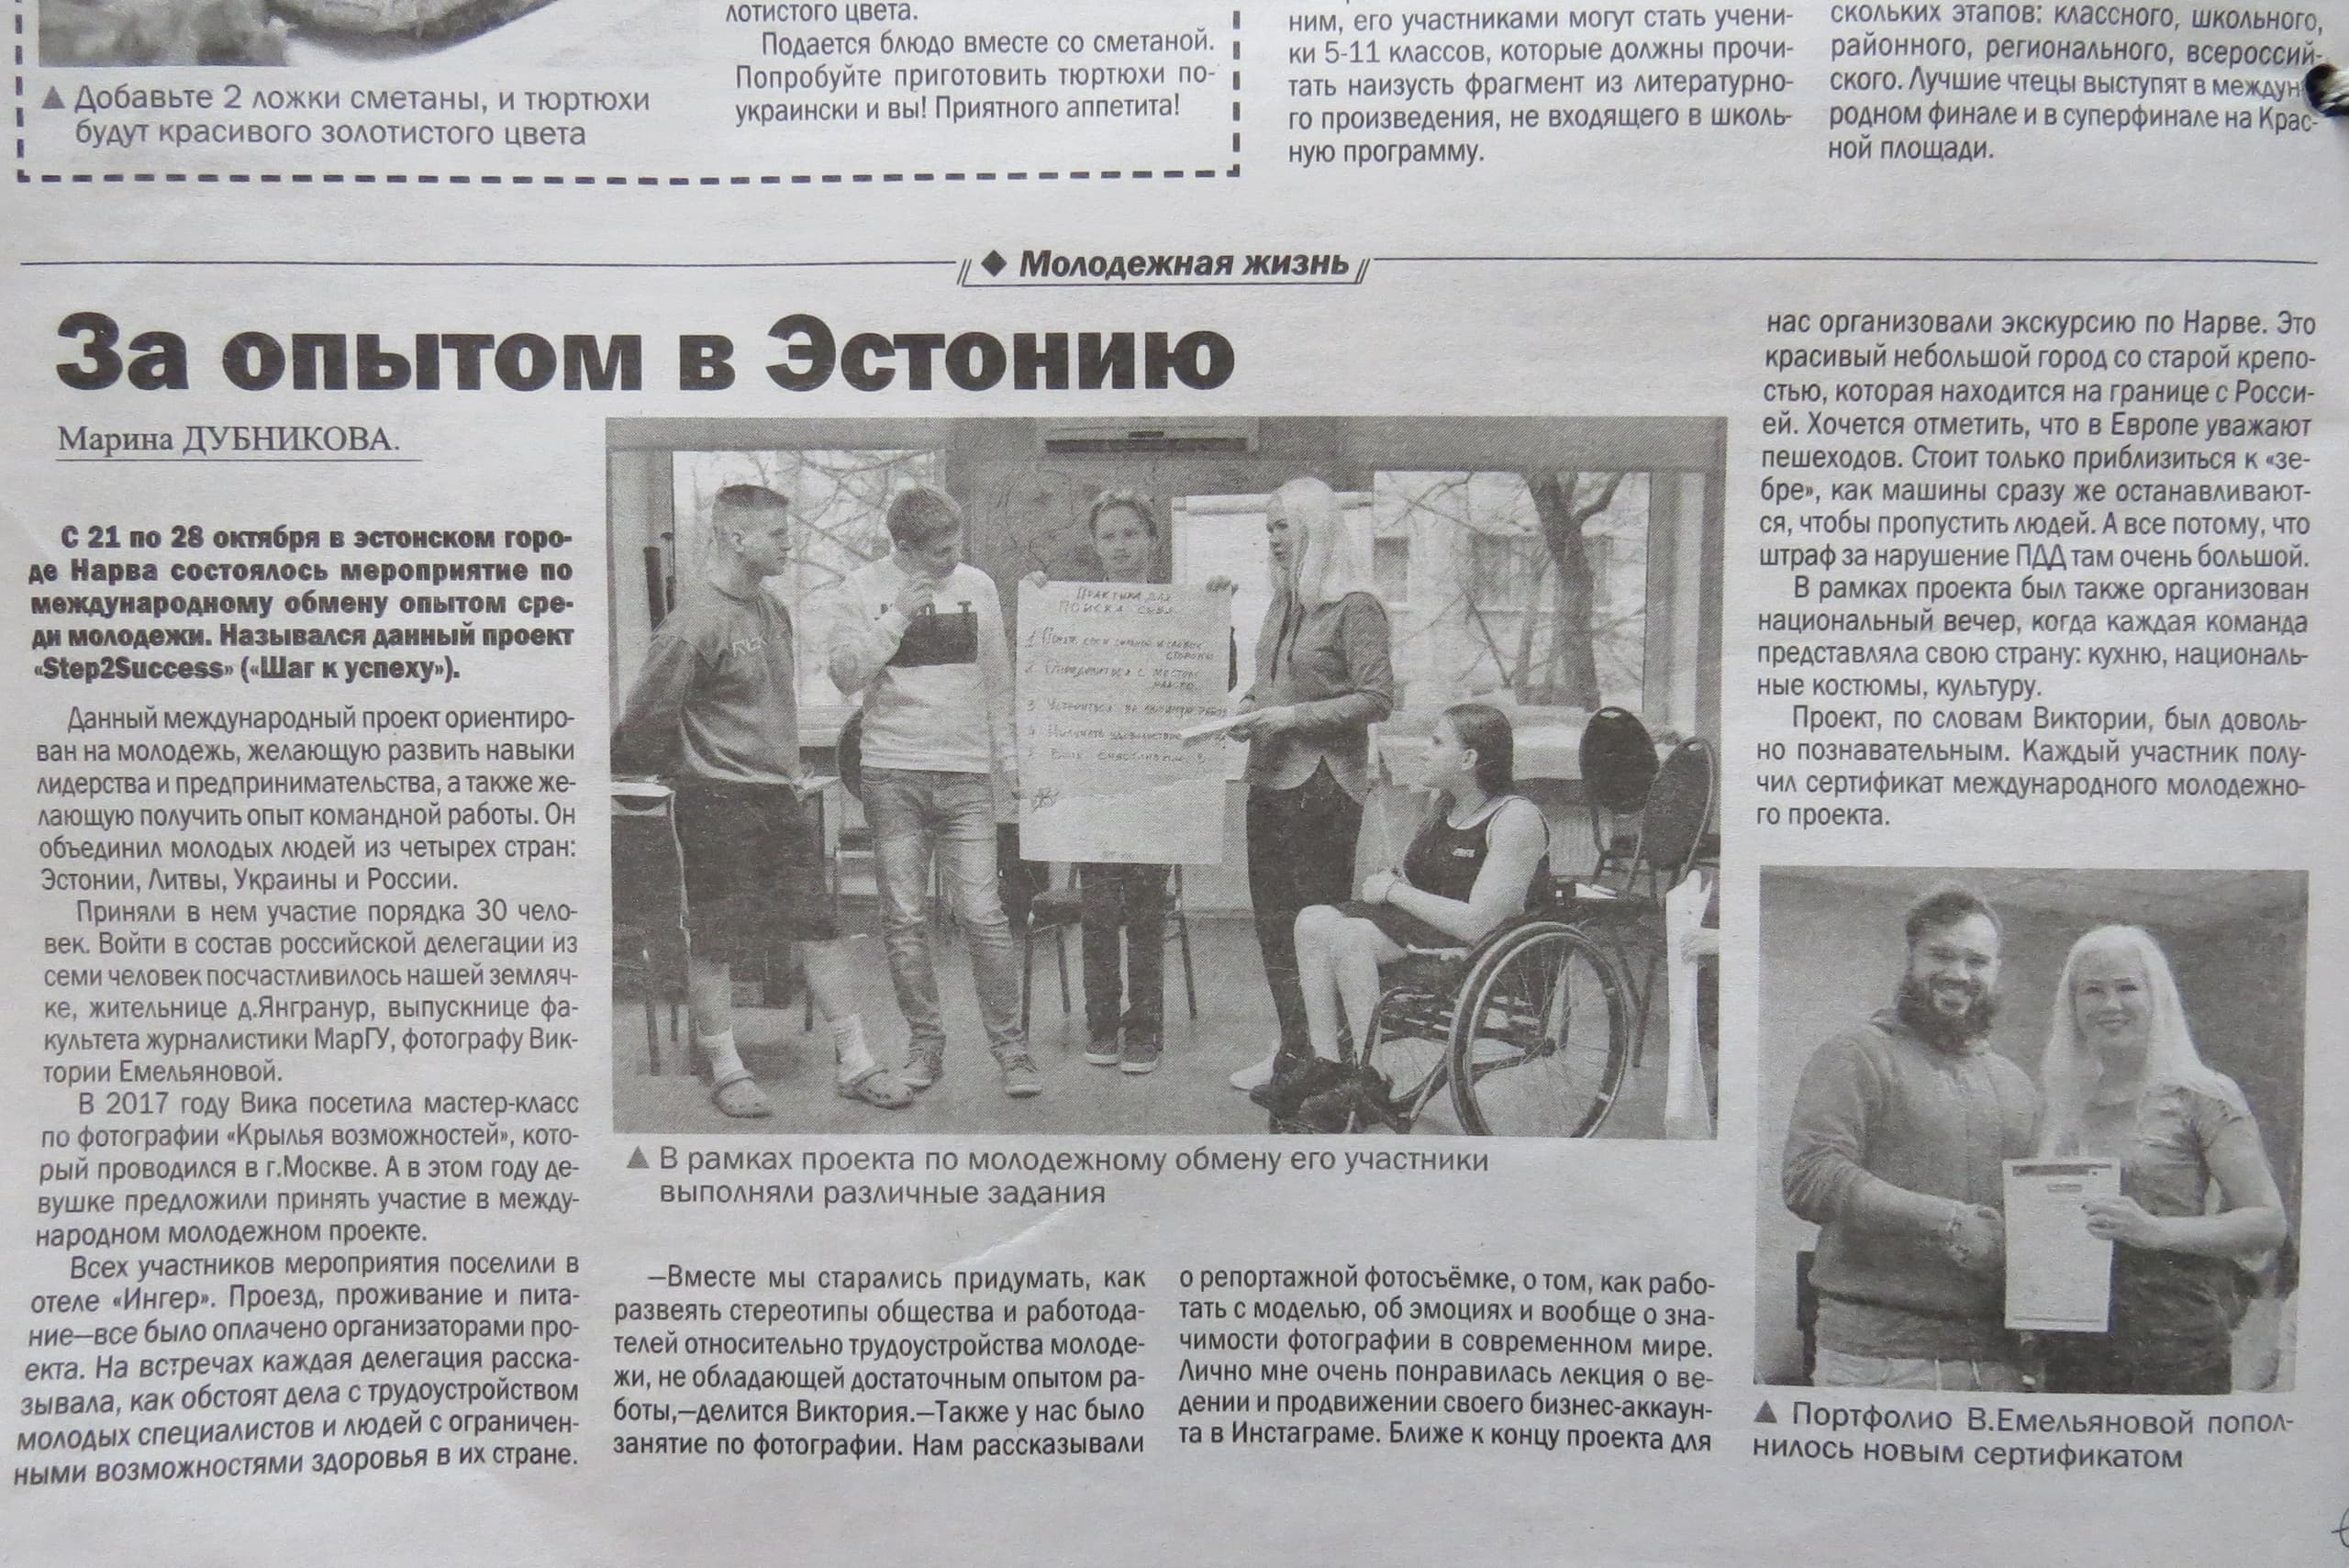 Russian Mass Media about S2S project